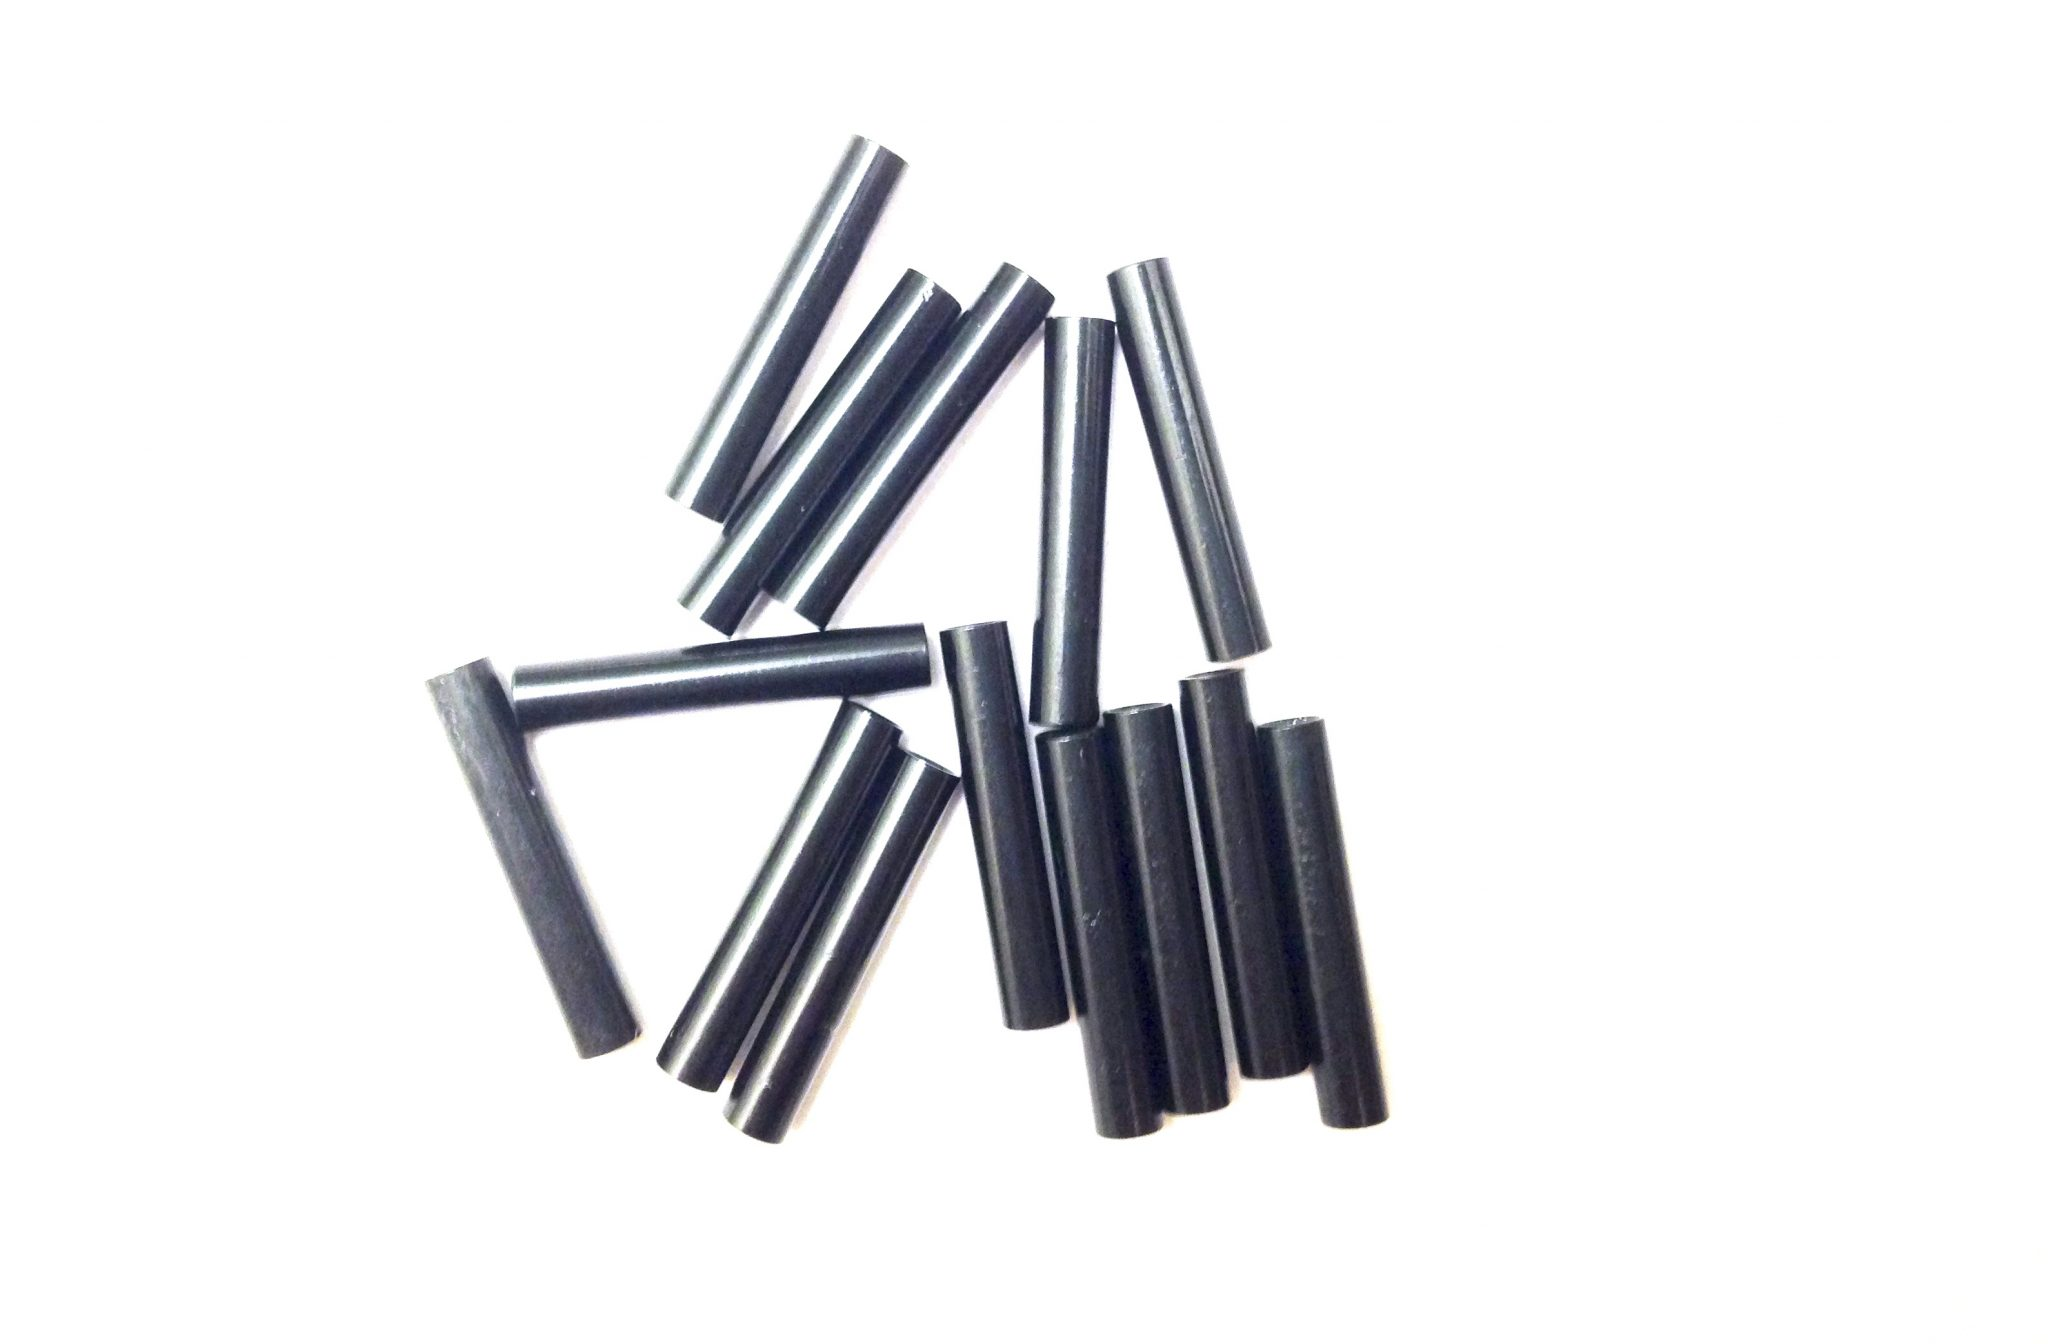 10pcs of 20mm M2 Black Aluminum Standoffs Spacers